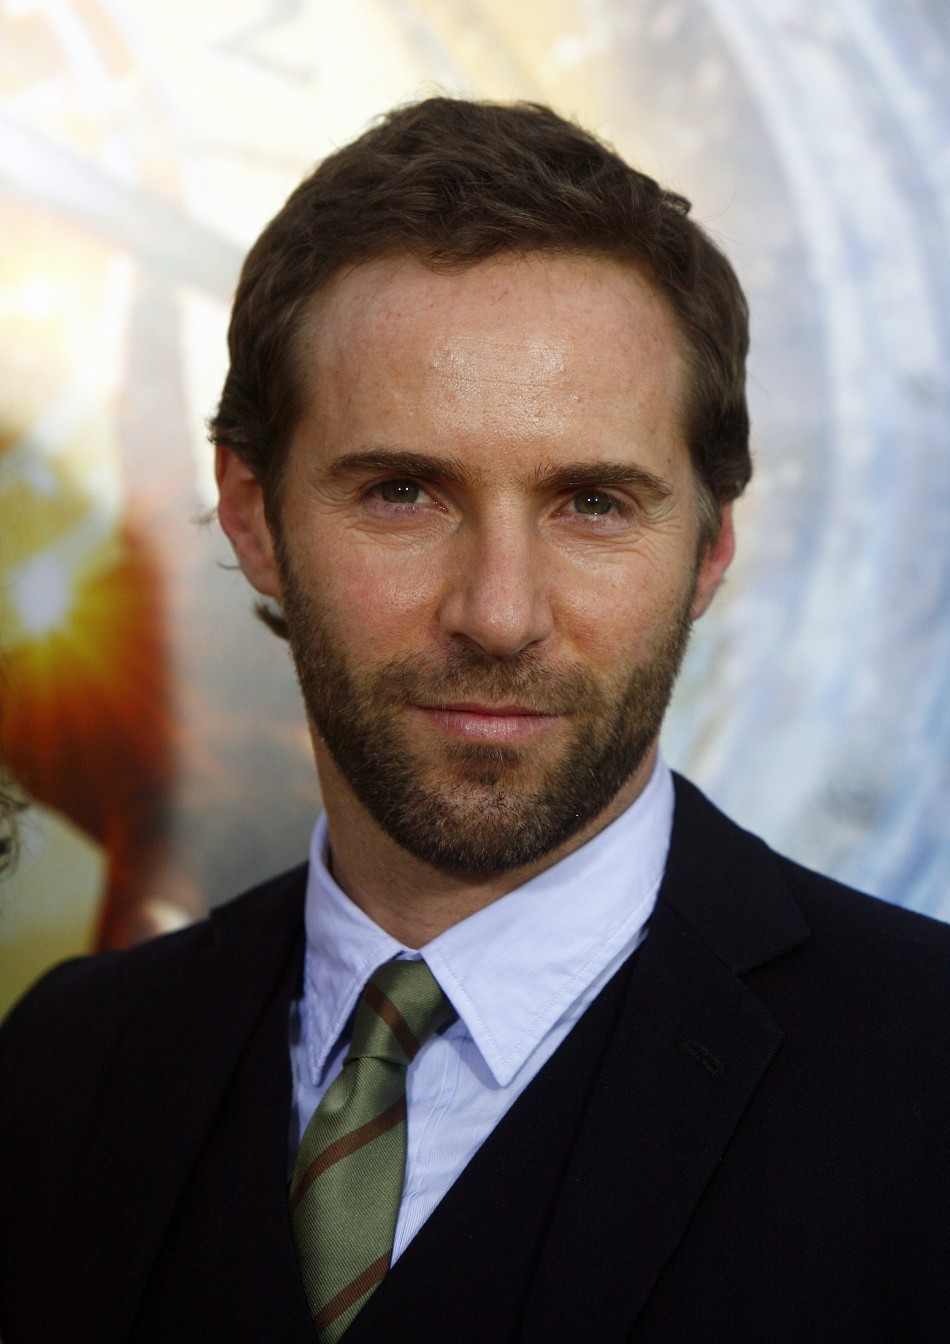 Actor Alessandro Nivola attends the premiere of quotHugoquot in New York